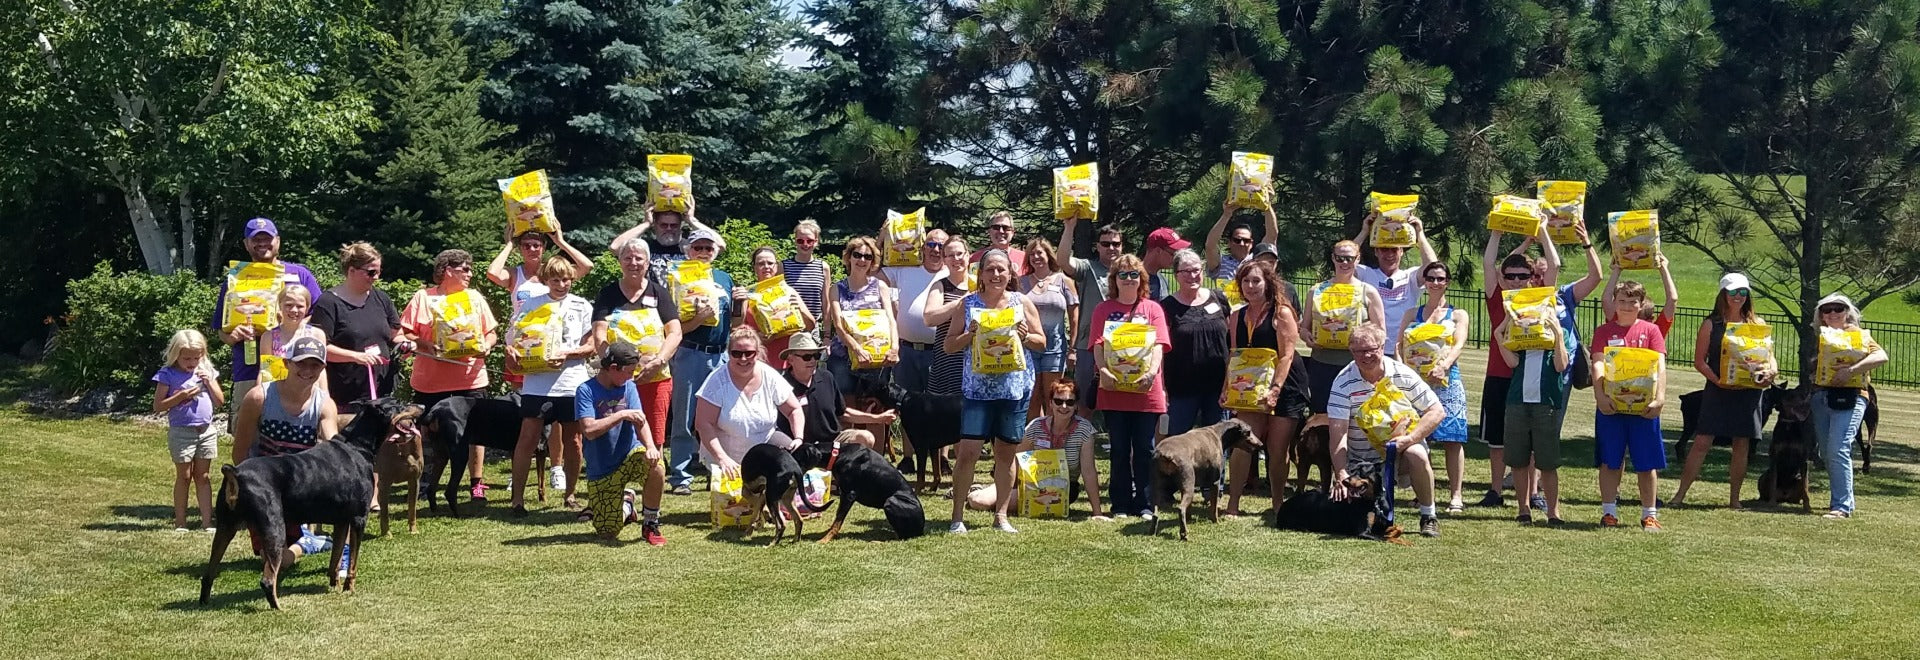 Organization with all members holding bags of Artisan Chicken dog food